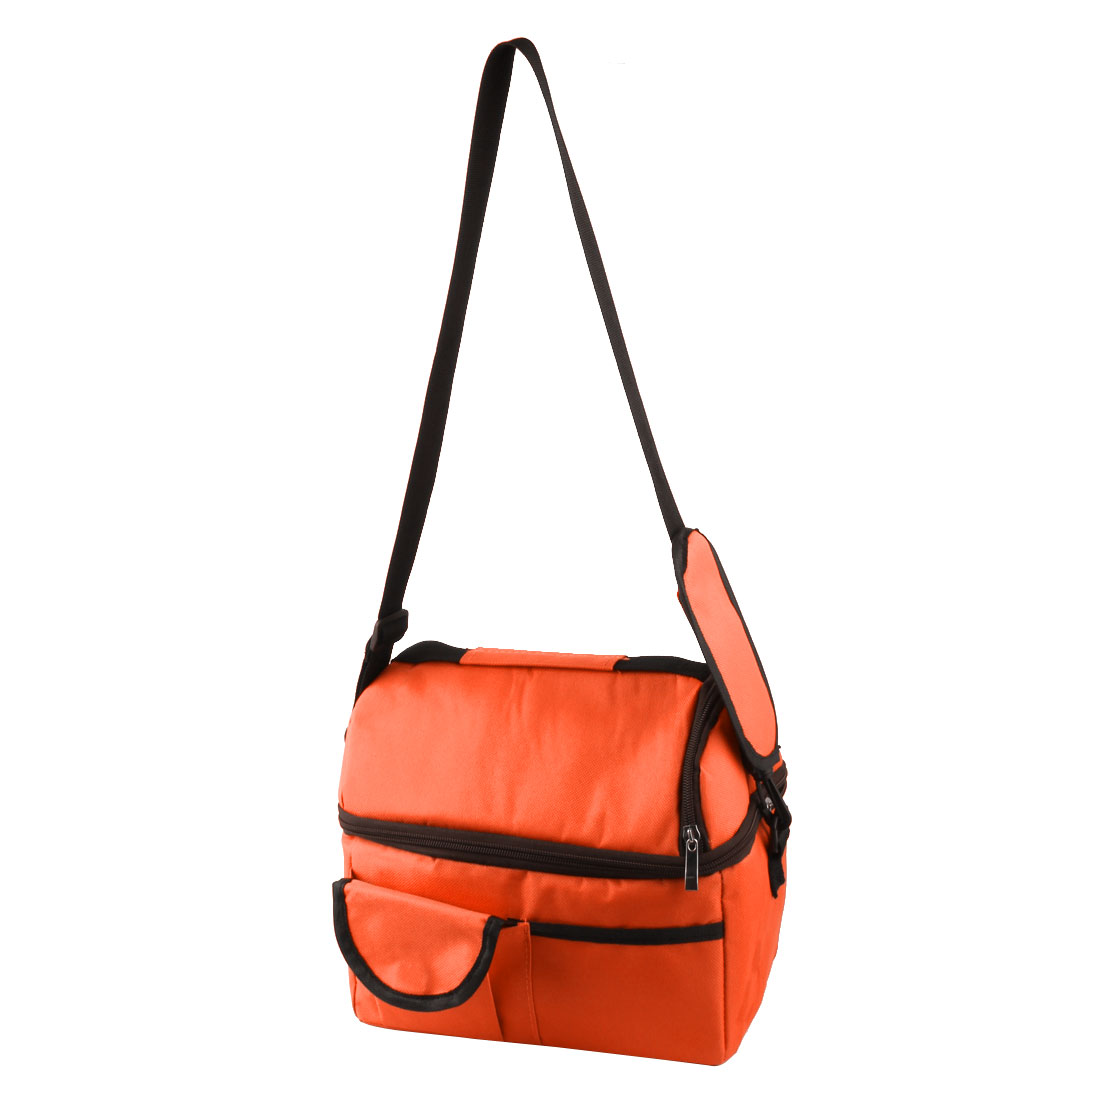 Outdoor Nylon Portable Double Layer Insulated Cooler Lunch Ice Bag Picnic Storage Carry Tote Orange